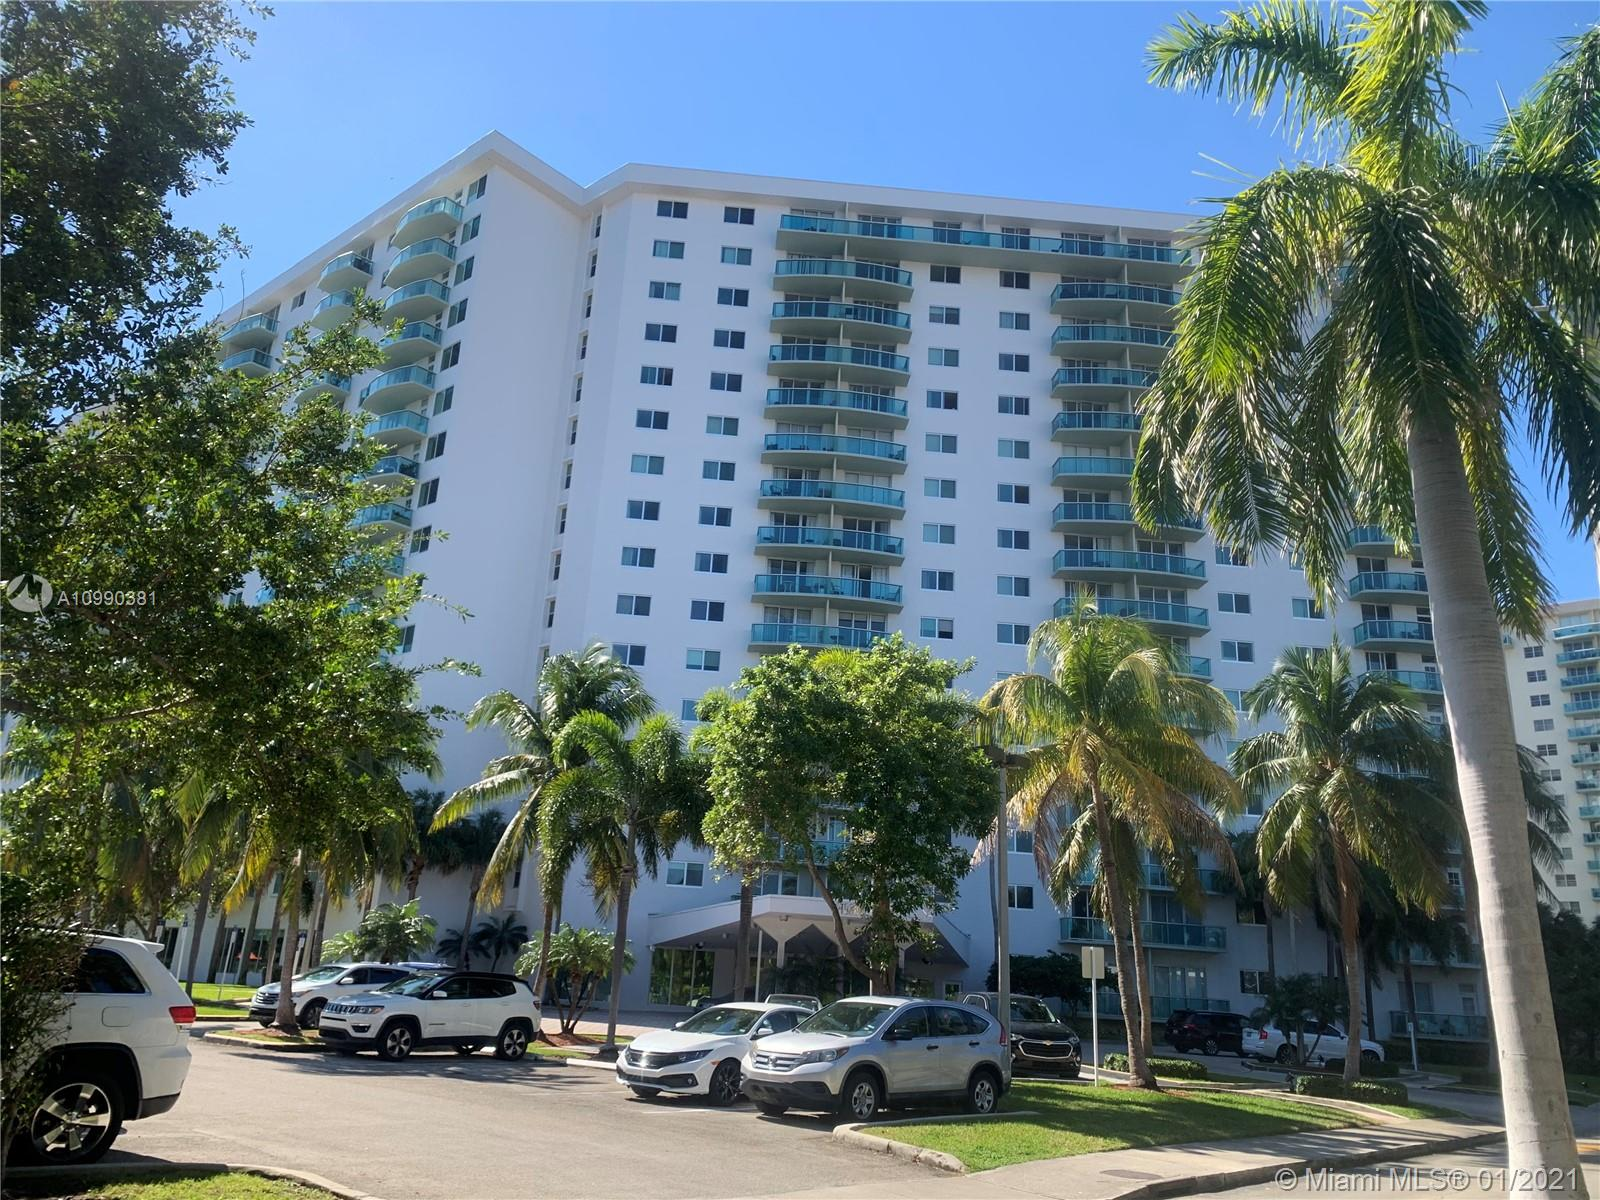 19380 Collins Ave #625 Property Photo